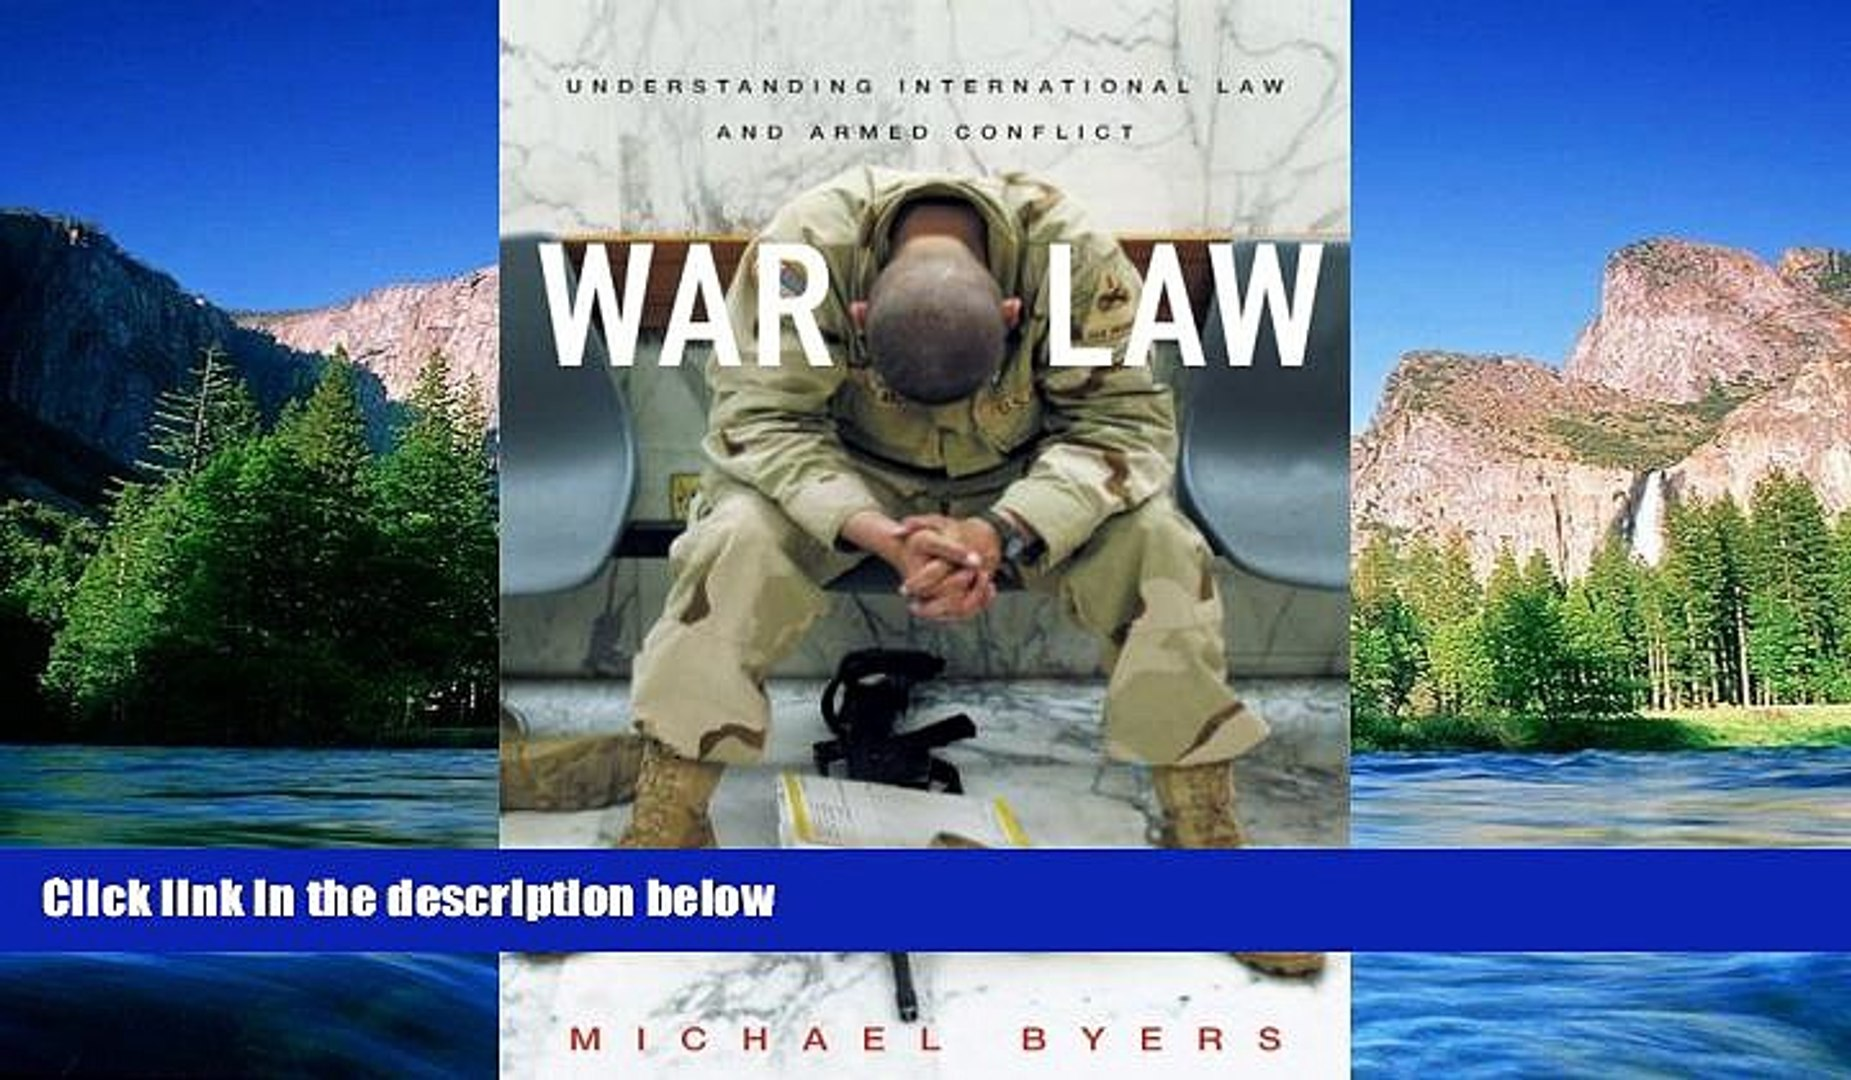 War Law Understanding International Law and Armed Conflict